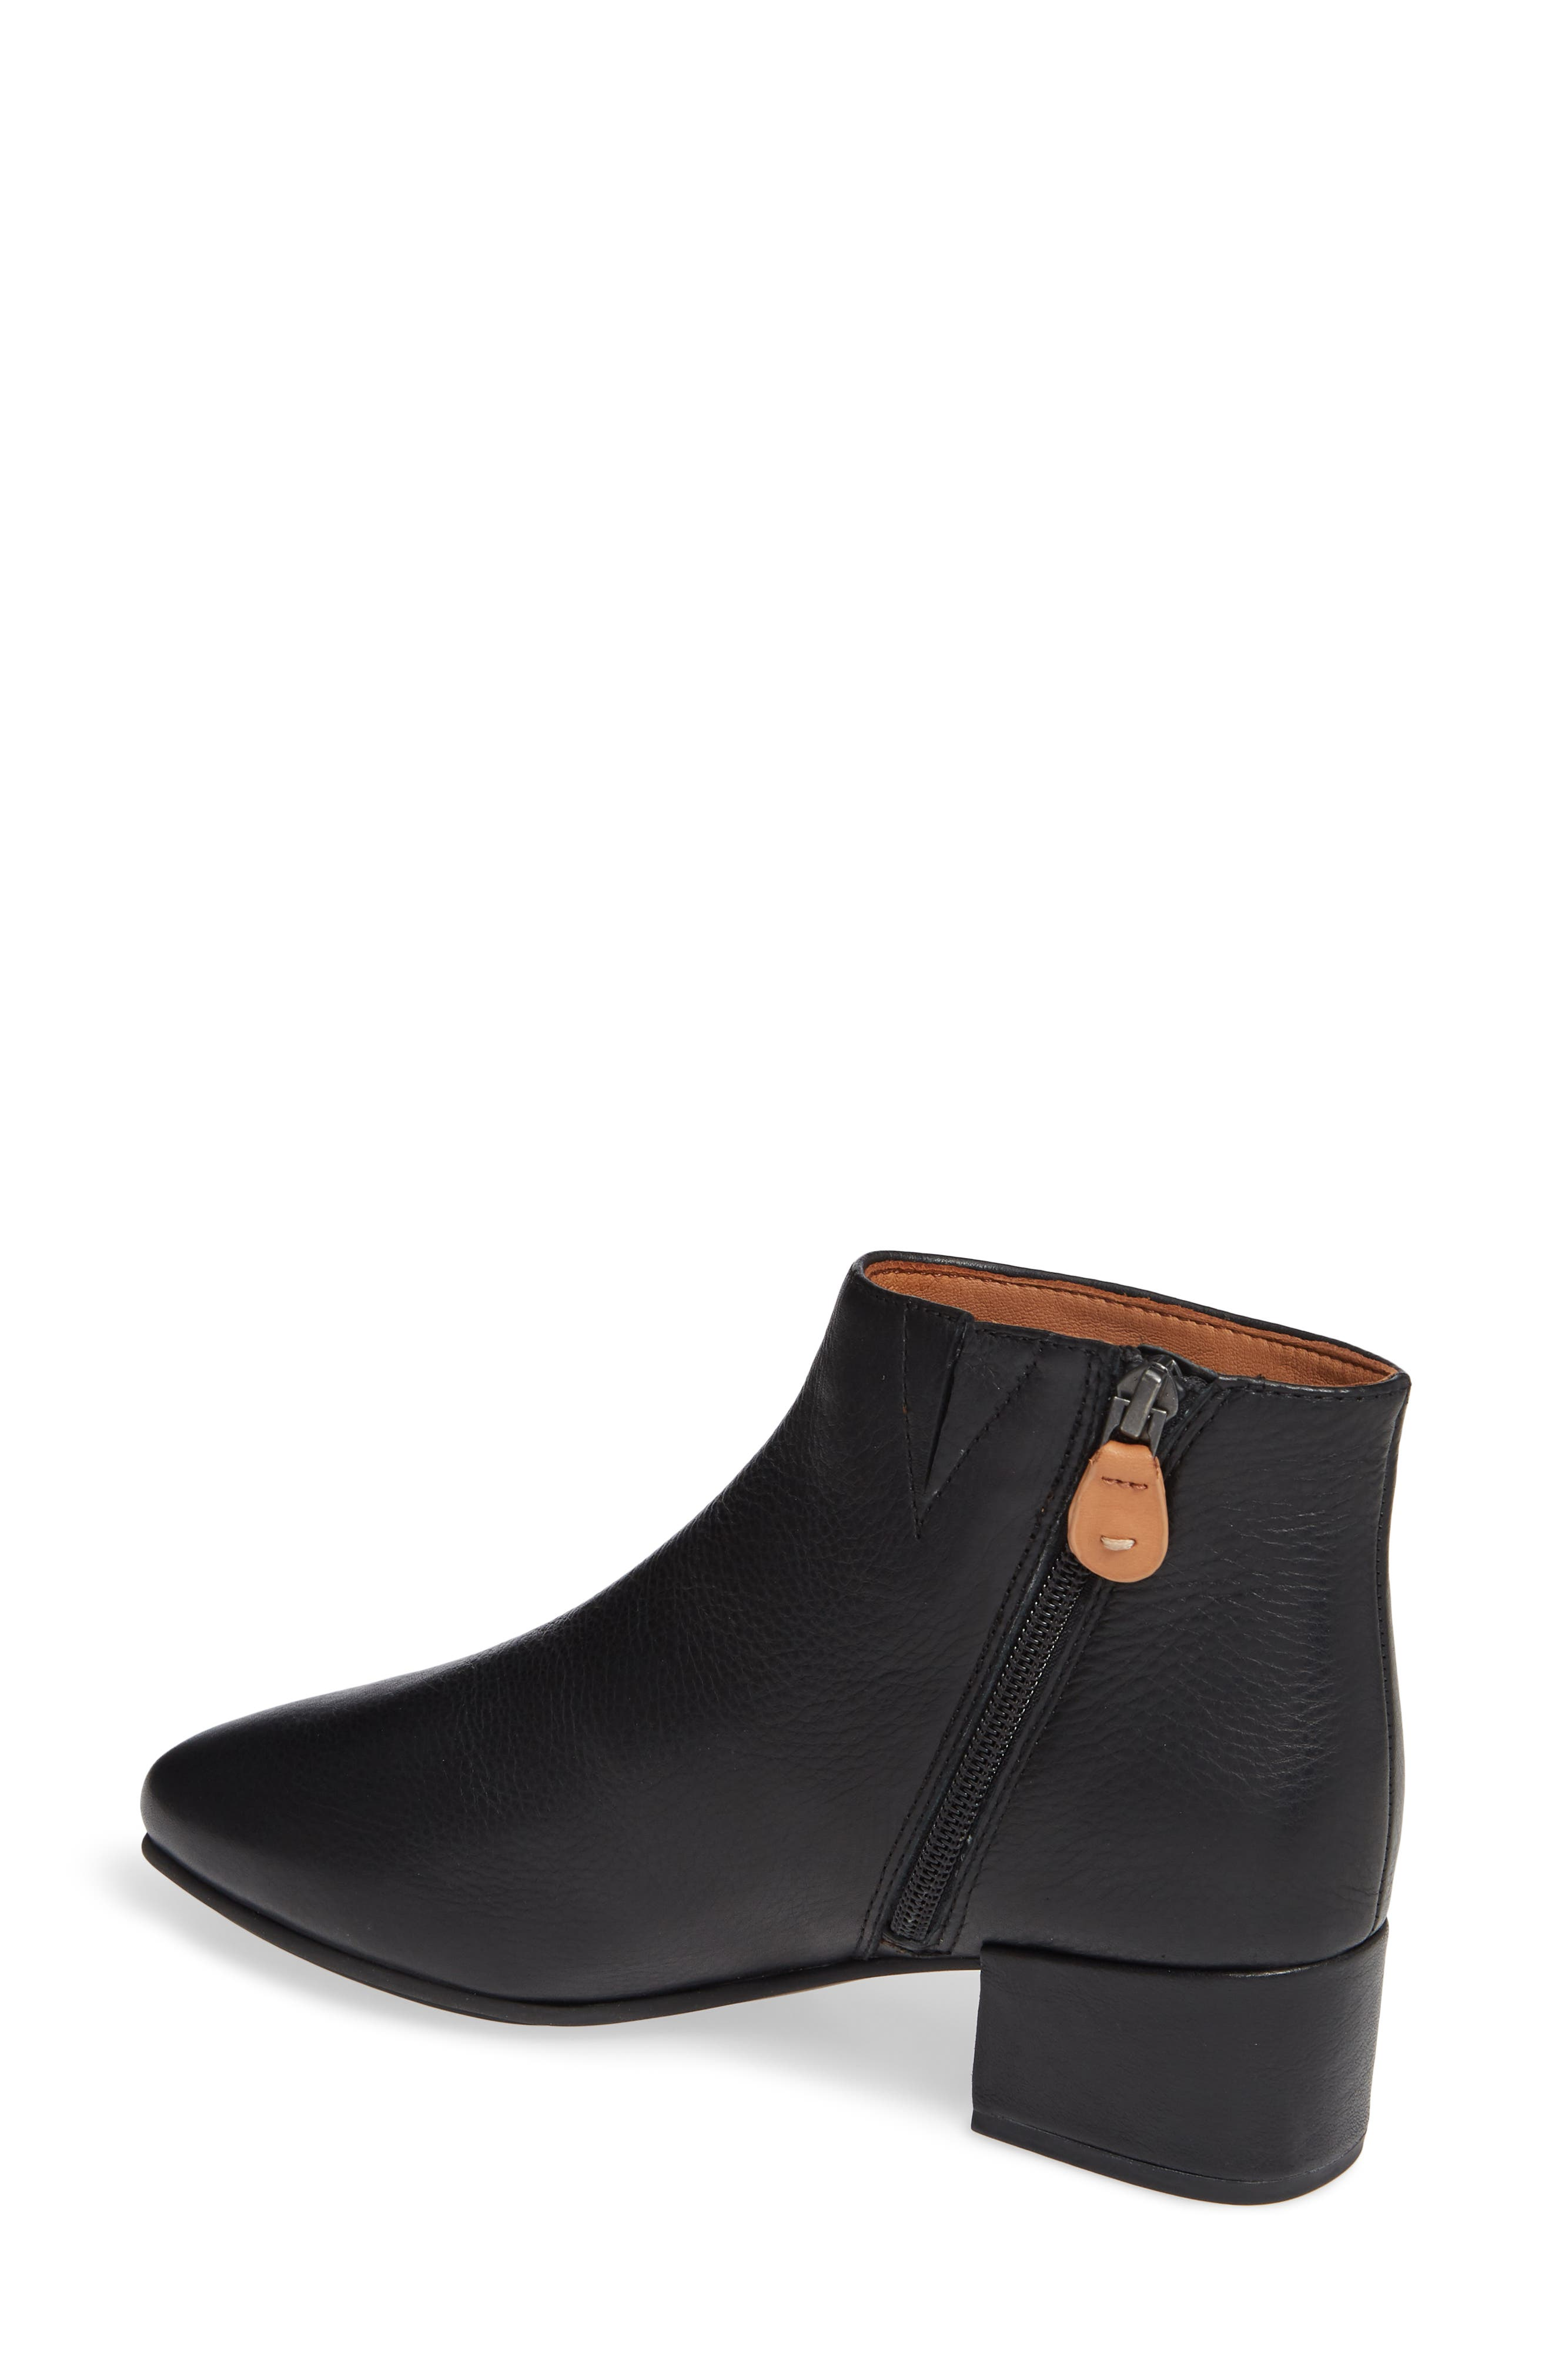 GENTLE SOULS BY KENNETH COLE, Ella Bootie, Alternate thumbnail 2, color, BLACK LEATHER